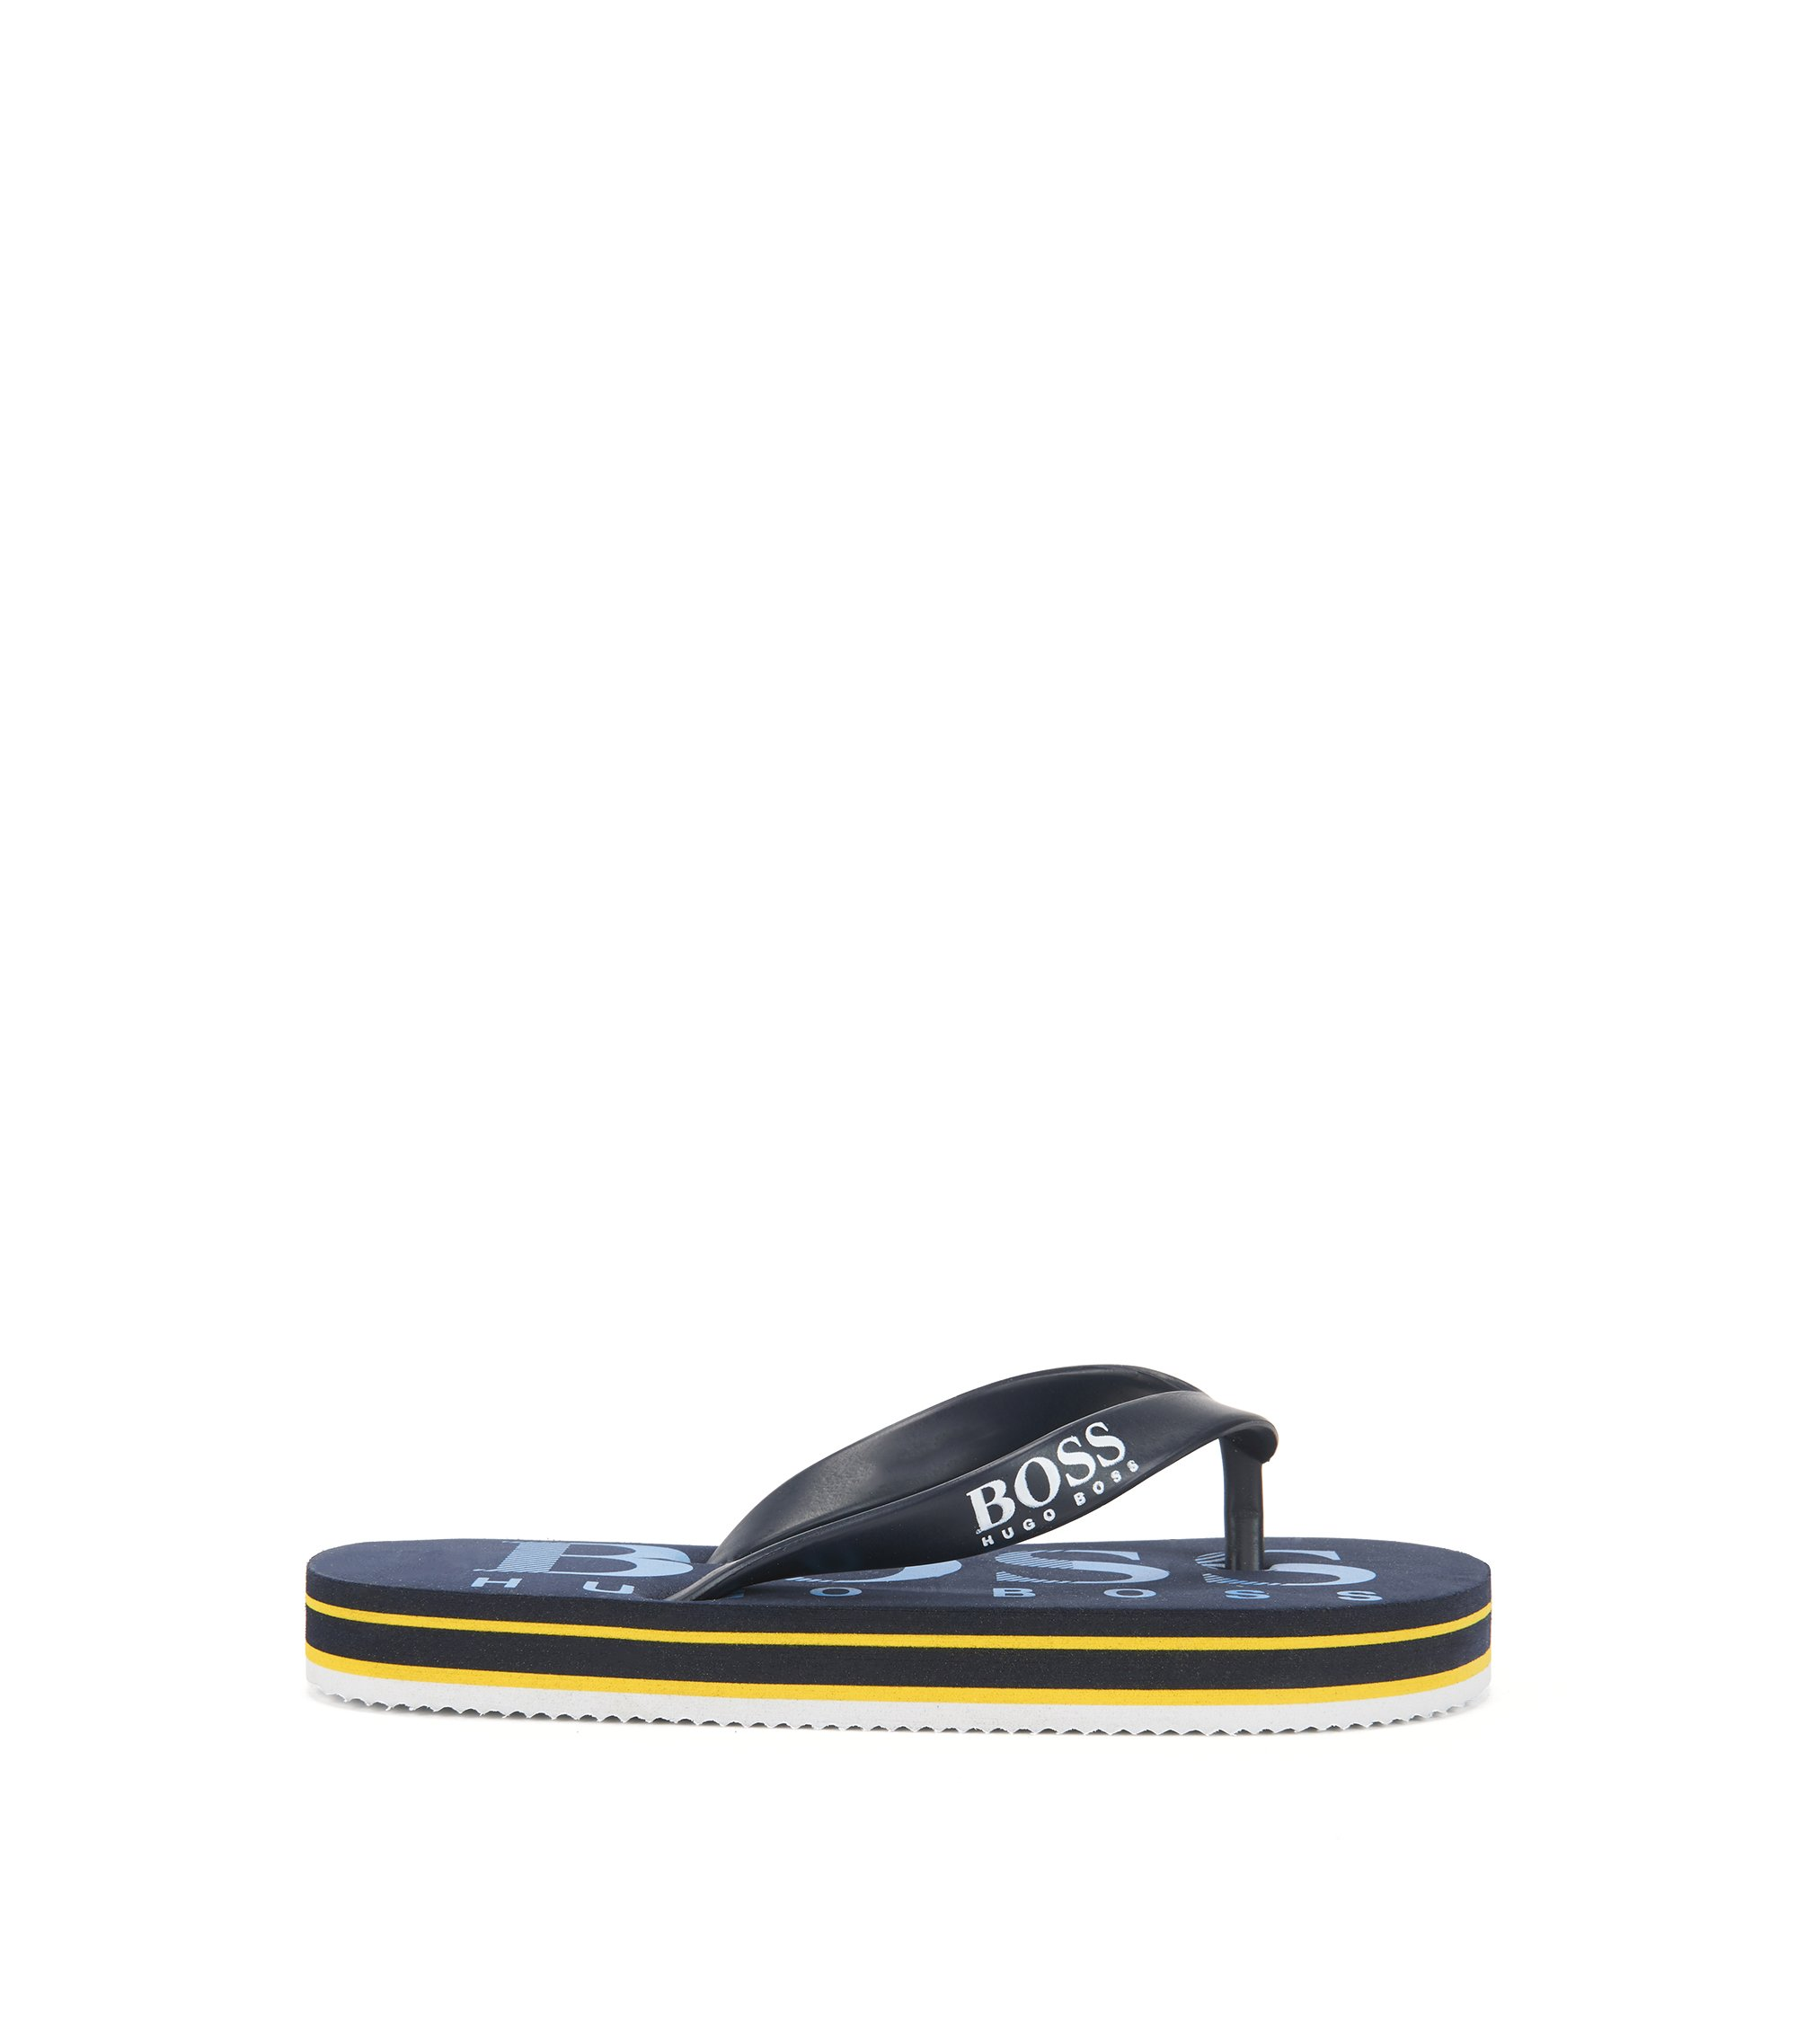 Kids' flip-flops with contrast logo, Dark Blue